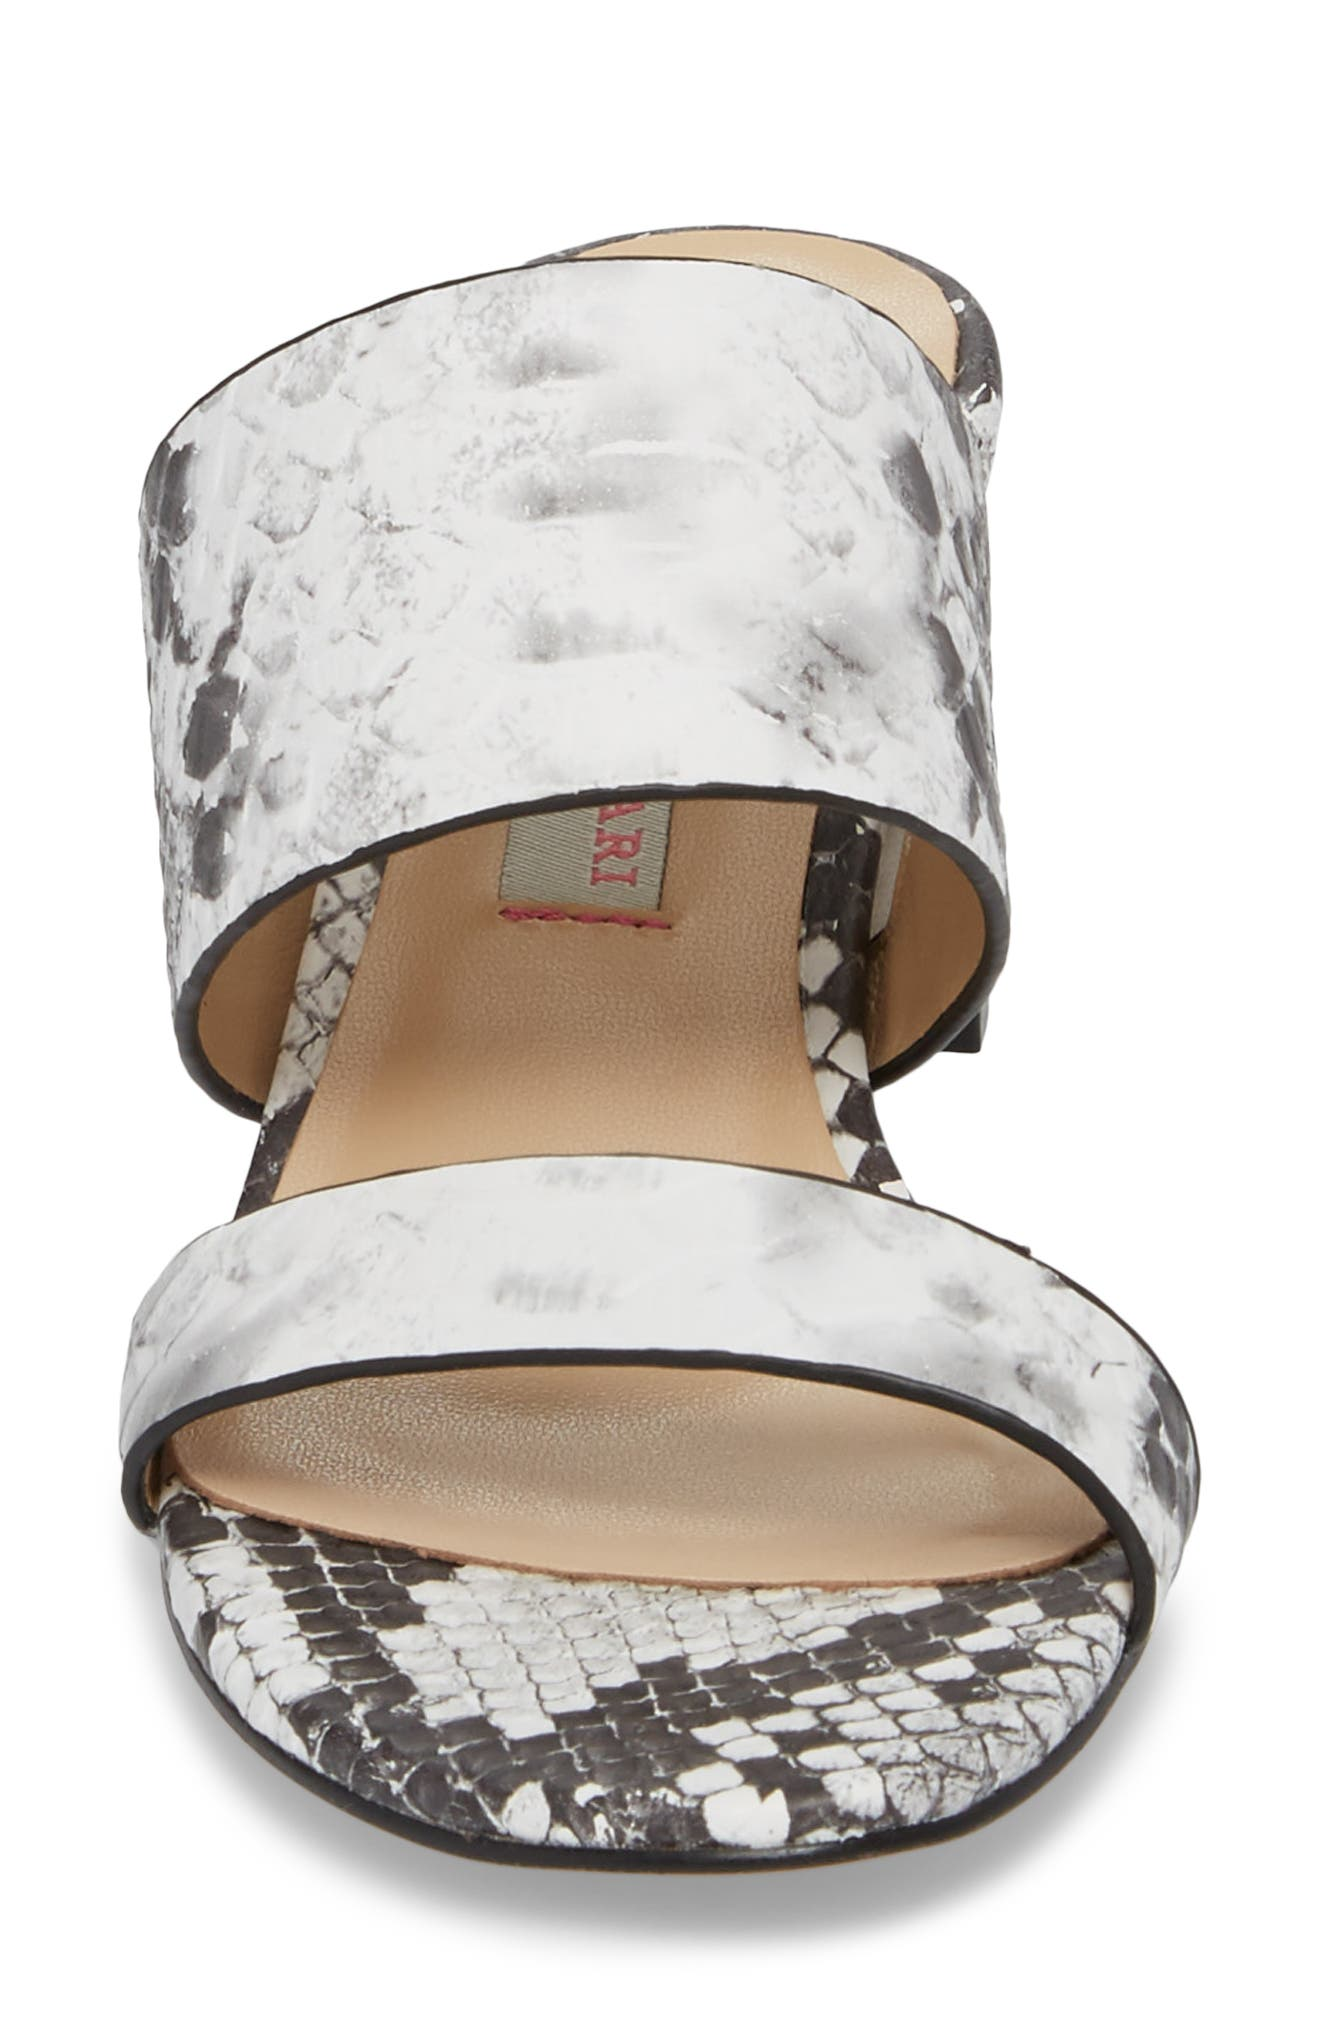 Lakeview Sandal,                             Alternate thumbnail 4, color,                             GREY/ WHITE PRINT LEATHER